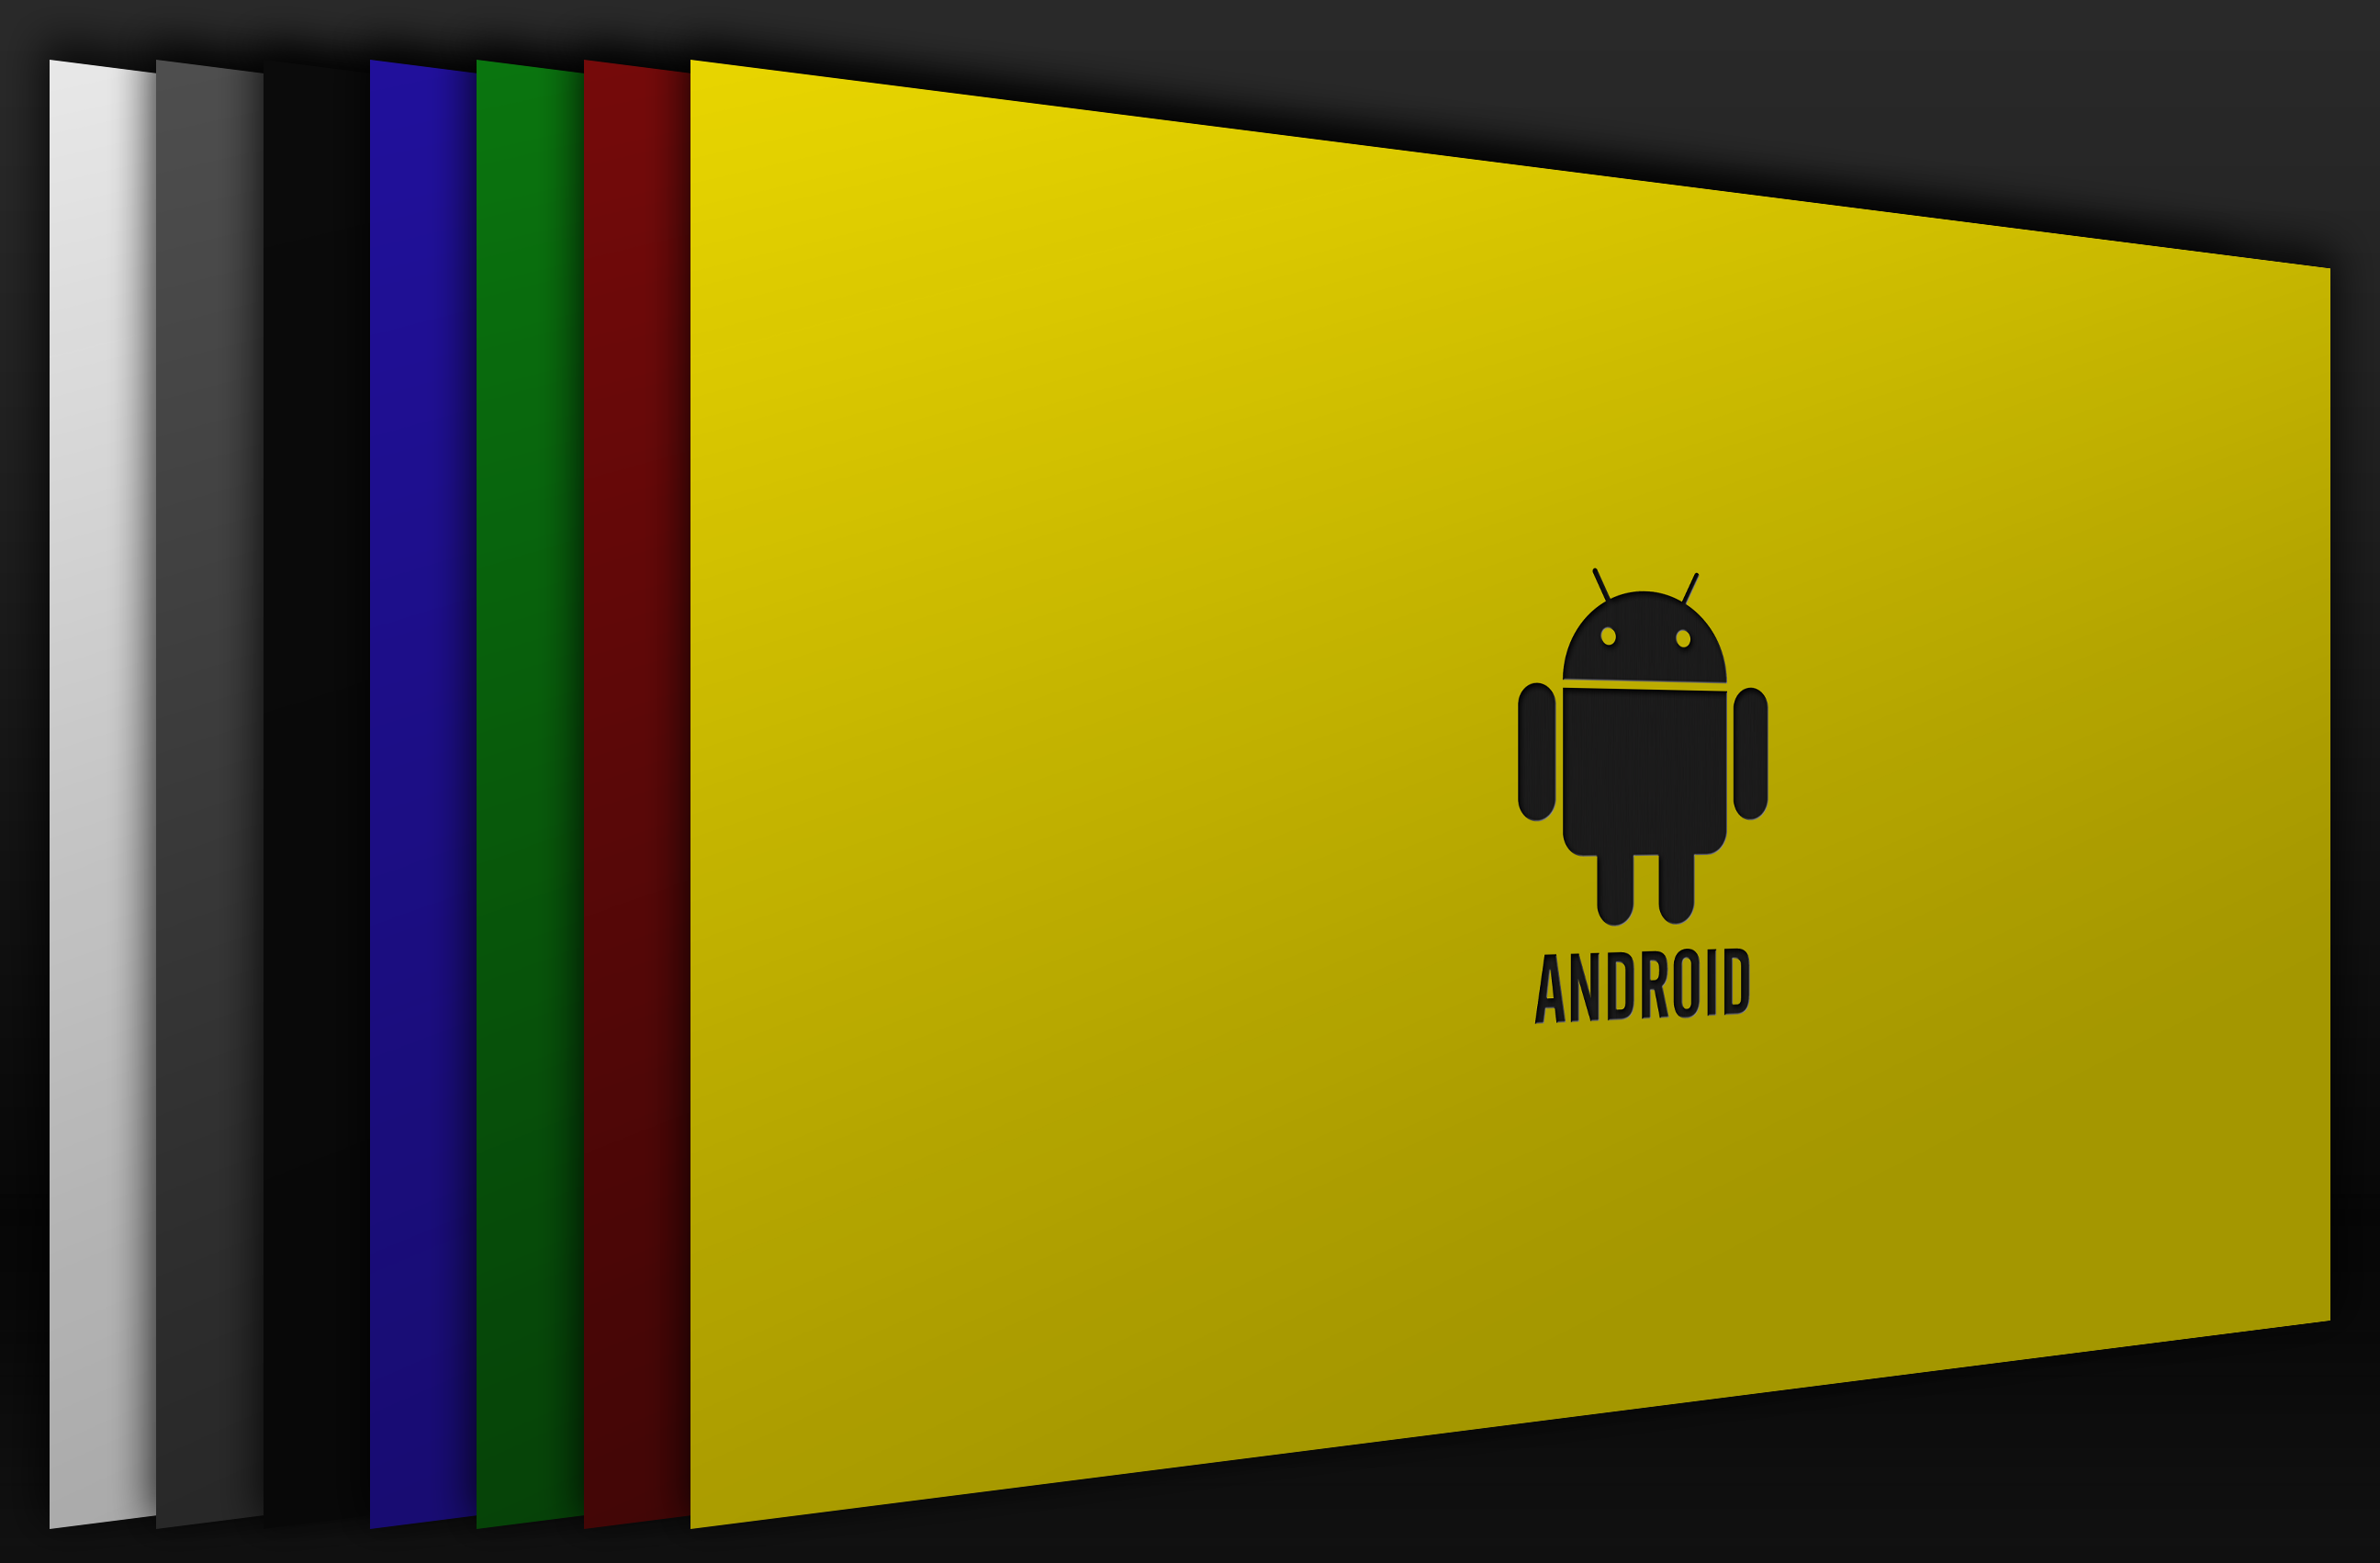 android wallpaper n1 by erickx on deviantart